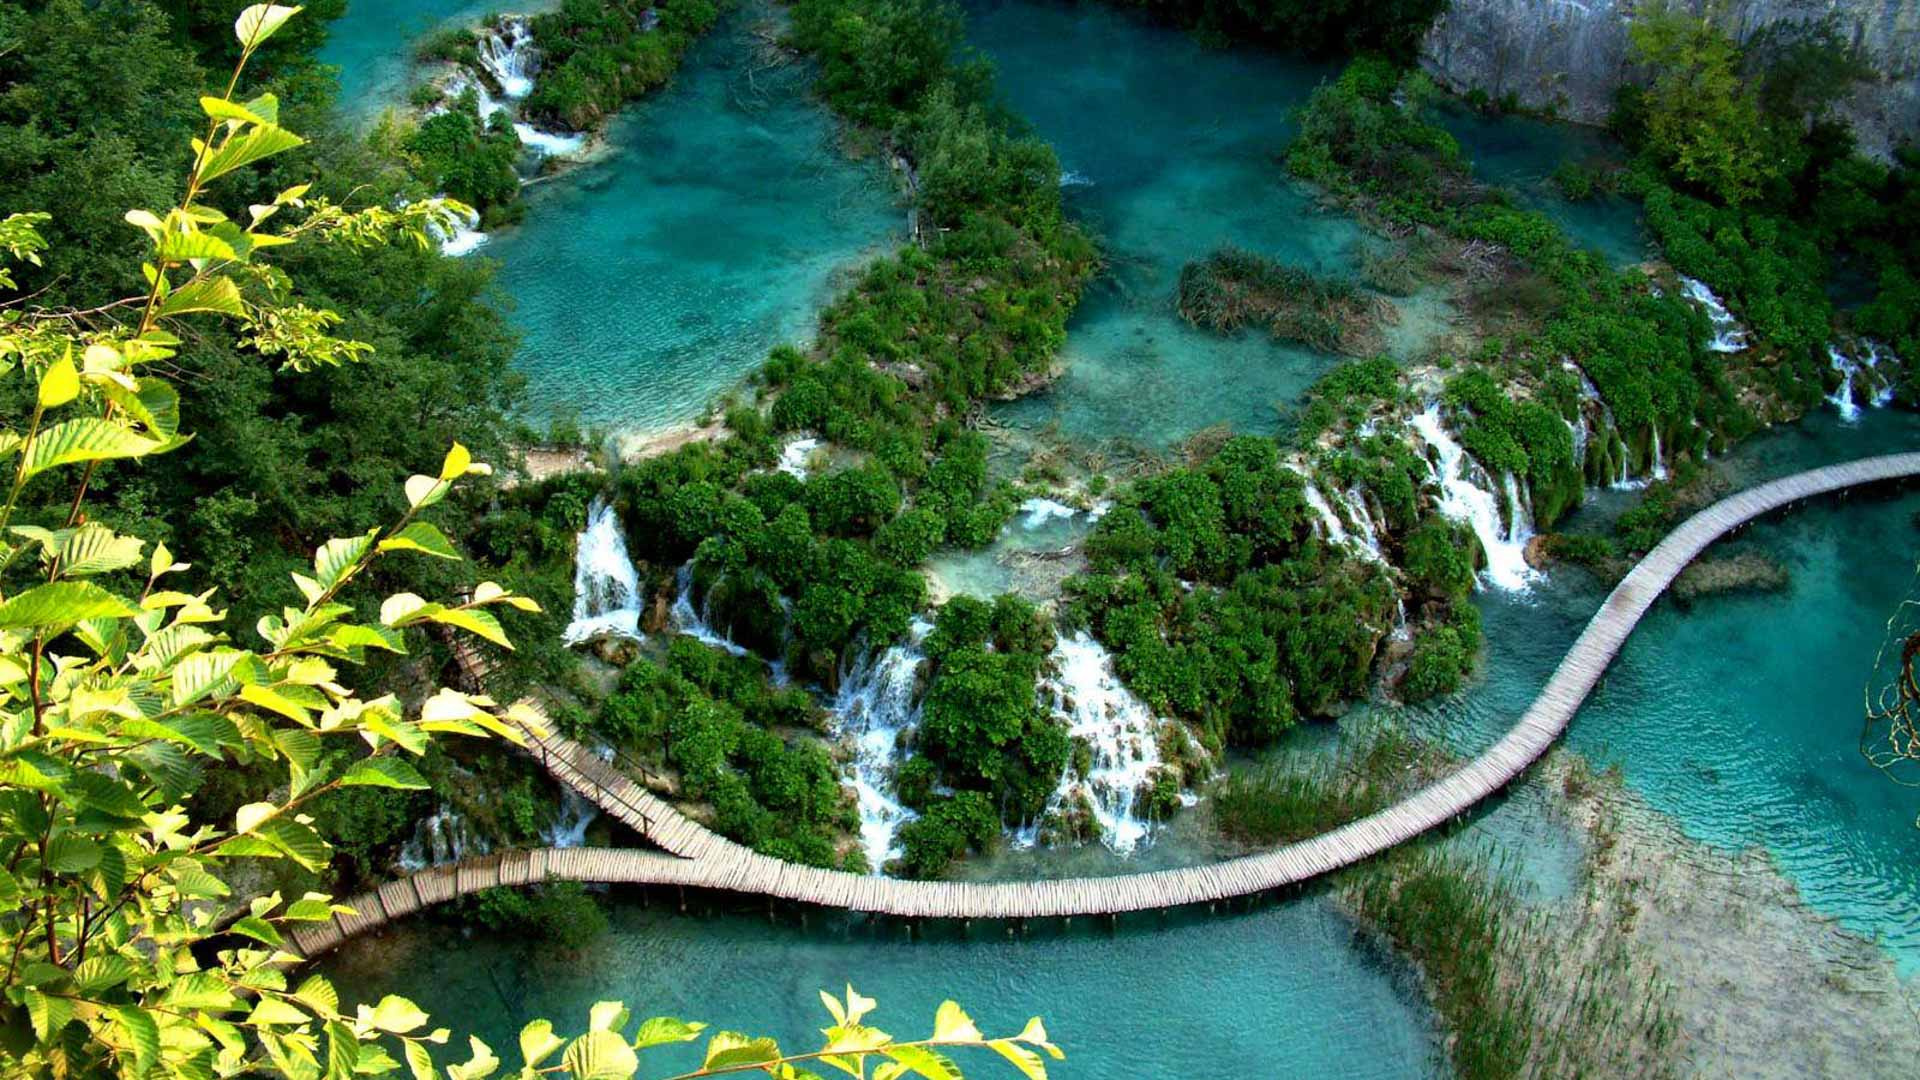 Fabelhaft Plitvice Lakes National Park | Activities Croatia | Raftrek @UM_44